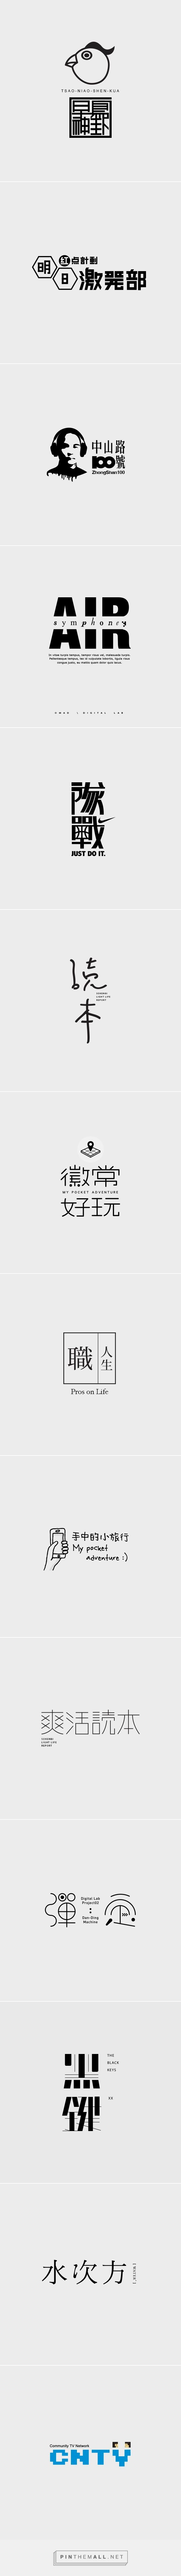 Christy Wang - 活動標準字設計 / LOGO / Typography on Behance